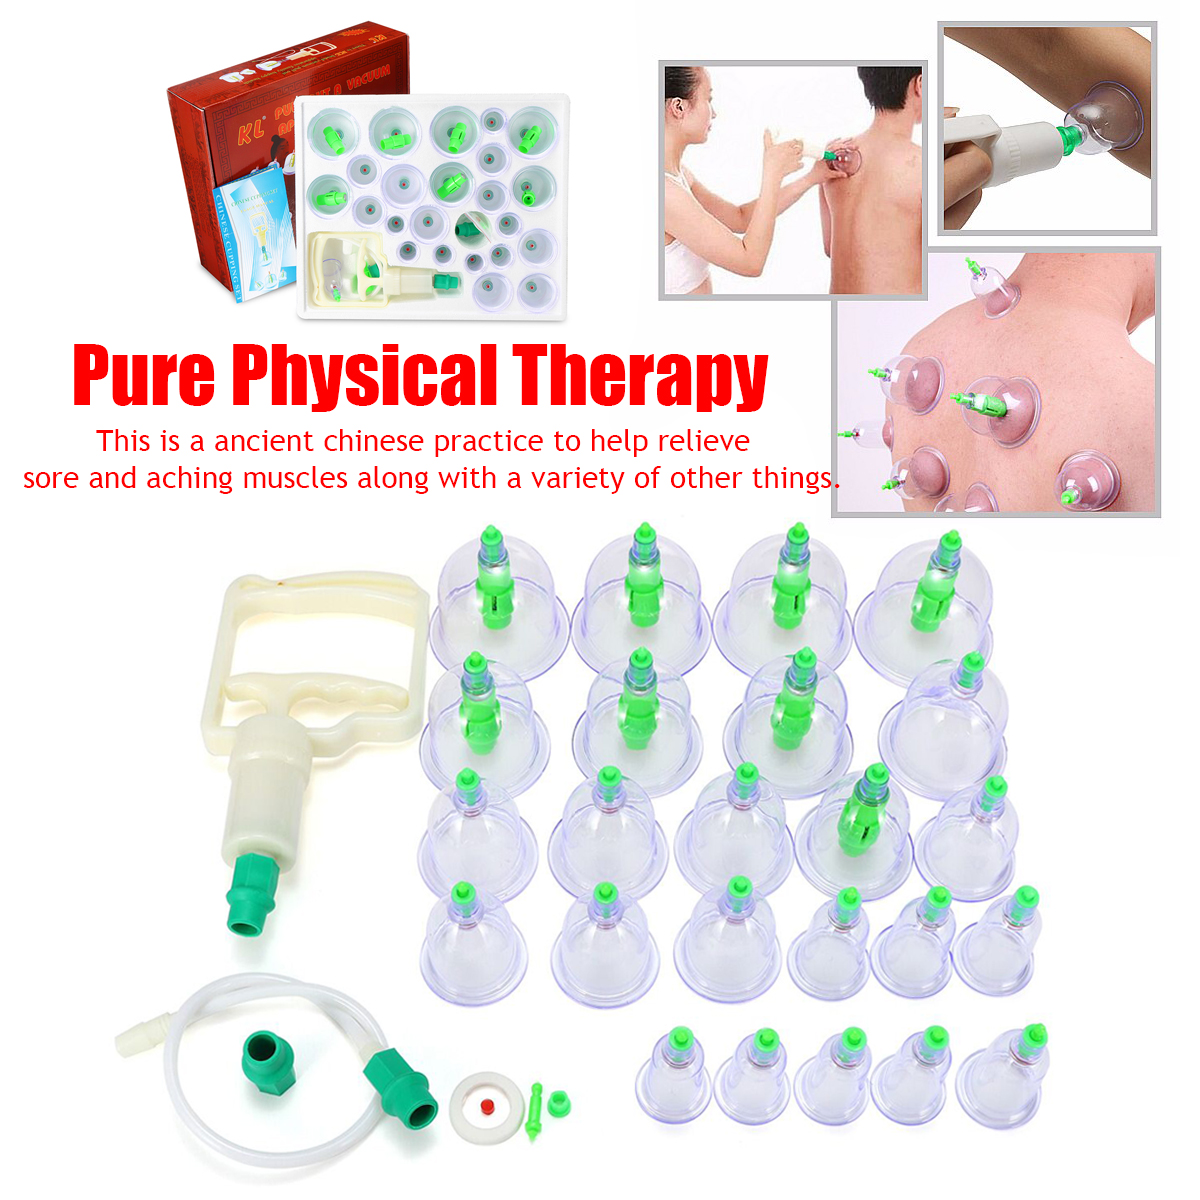 24Pcs Vacuum Therapy Cups Help Relieve Sore Good Penetrating Effect Safer Chinese Healthy Body Cupping Suction Massage Helper24Pcs Vacuum Therapy Cups Help Relieve Sore Good Penetrating Effect Safer Chinese Healthy Body Cupping Suction Massage Helper